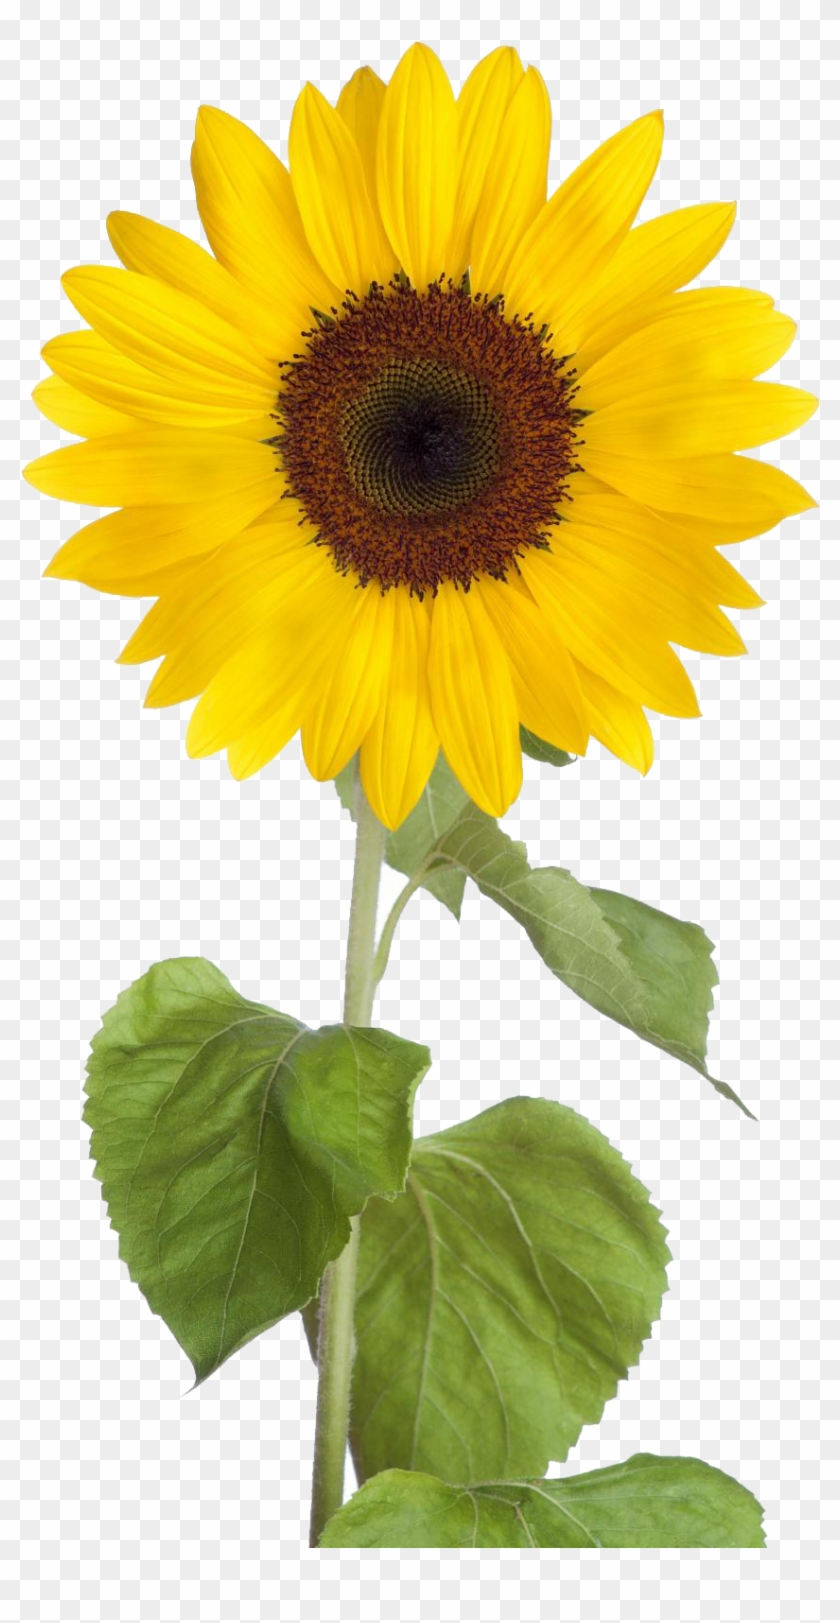 Sunflower clear background. Png free download transparent